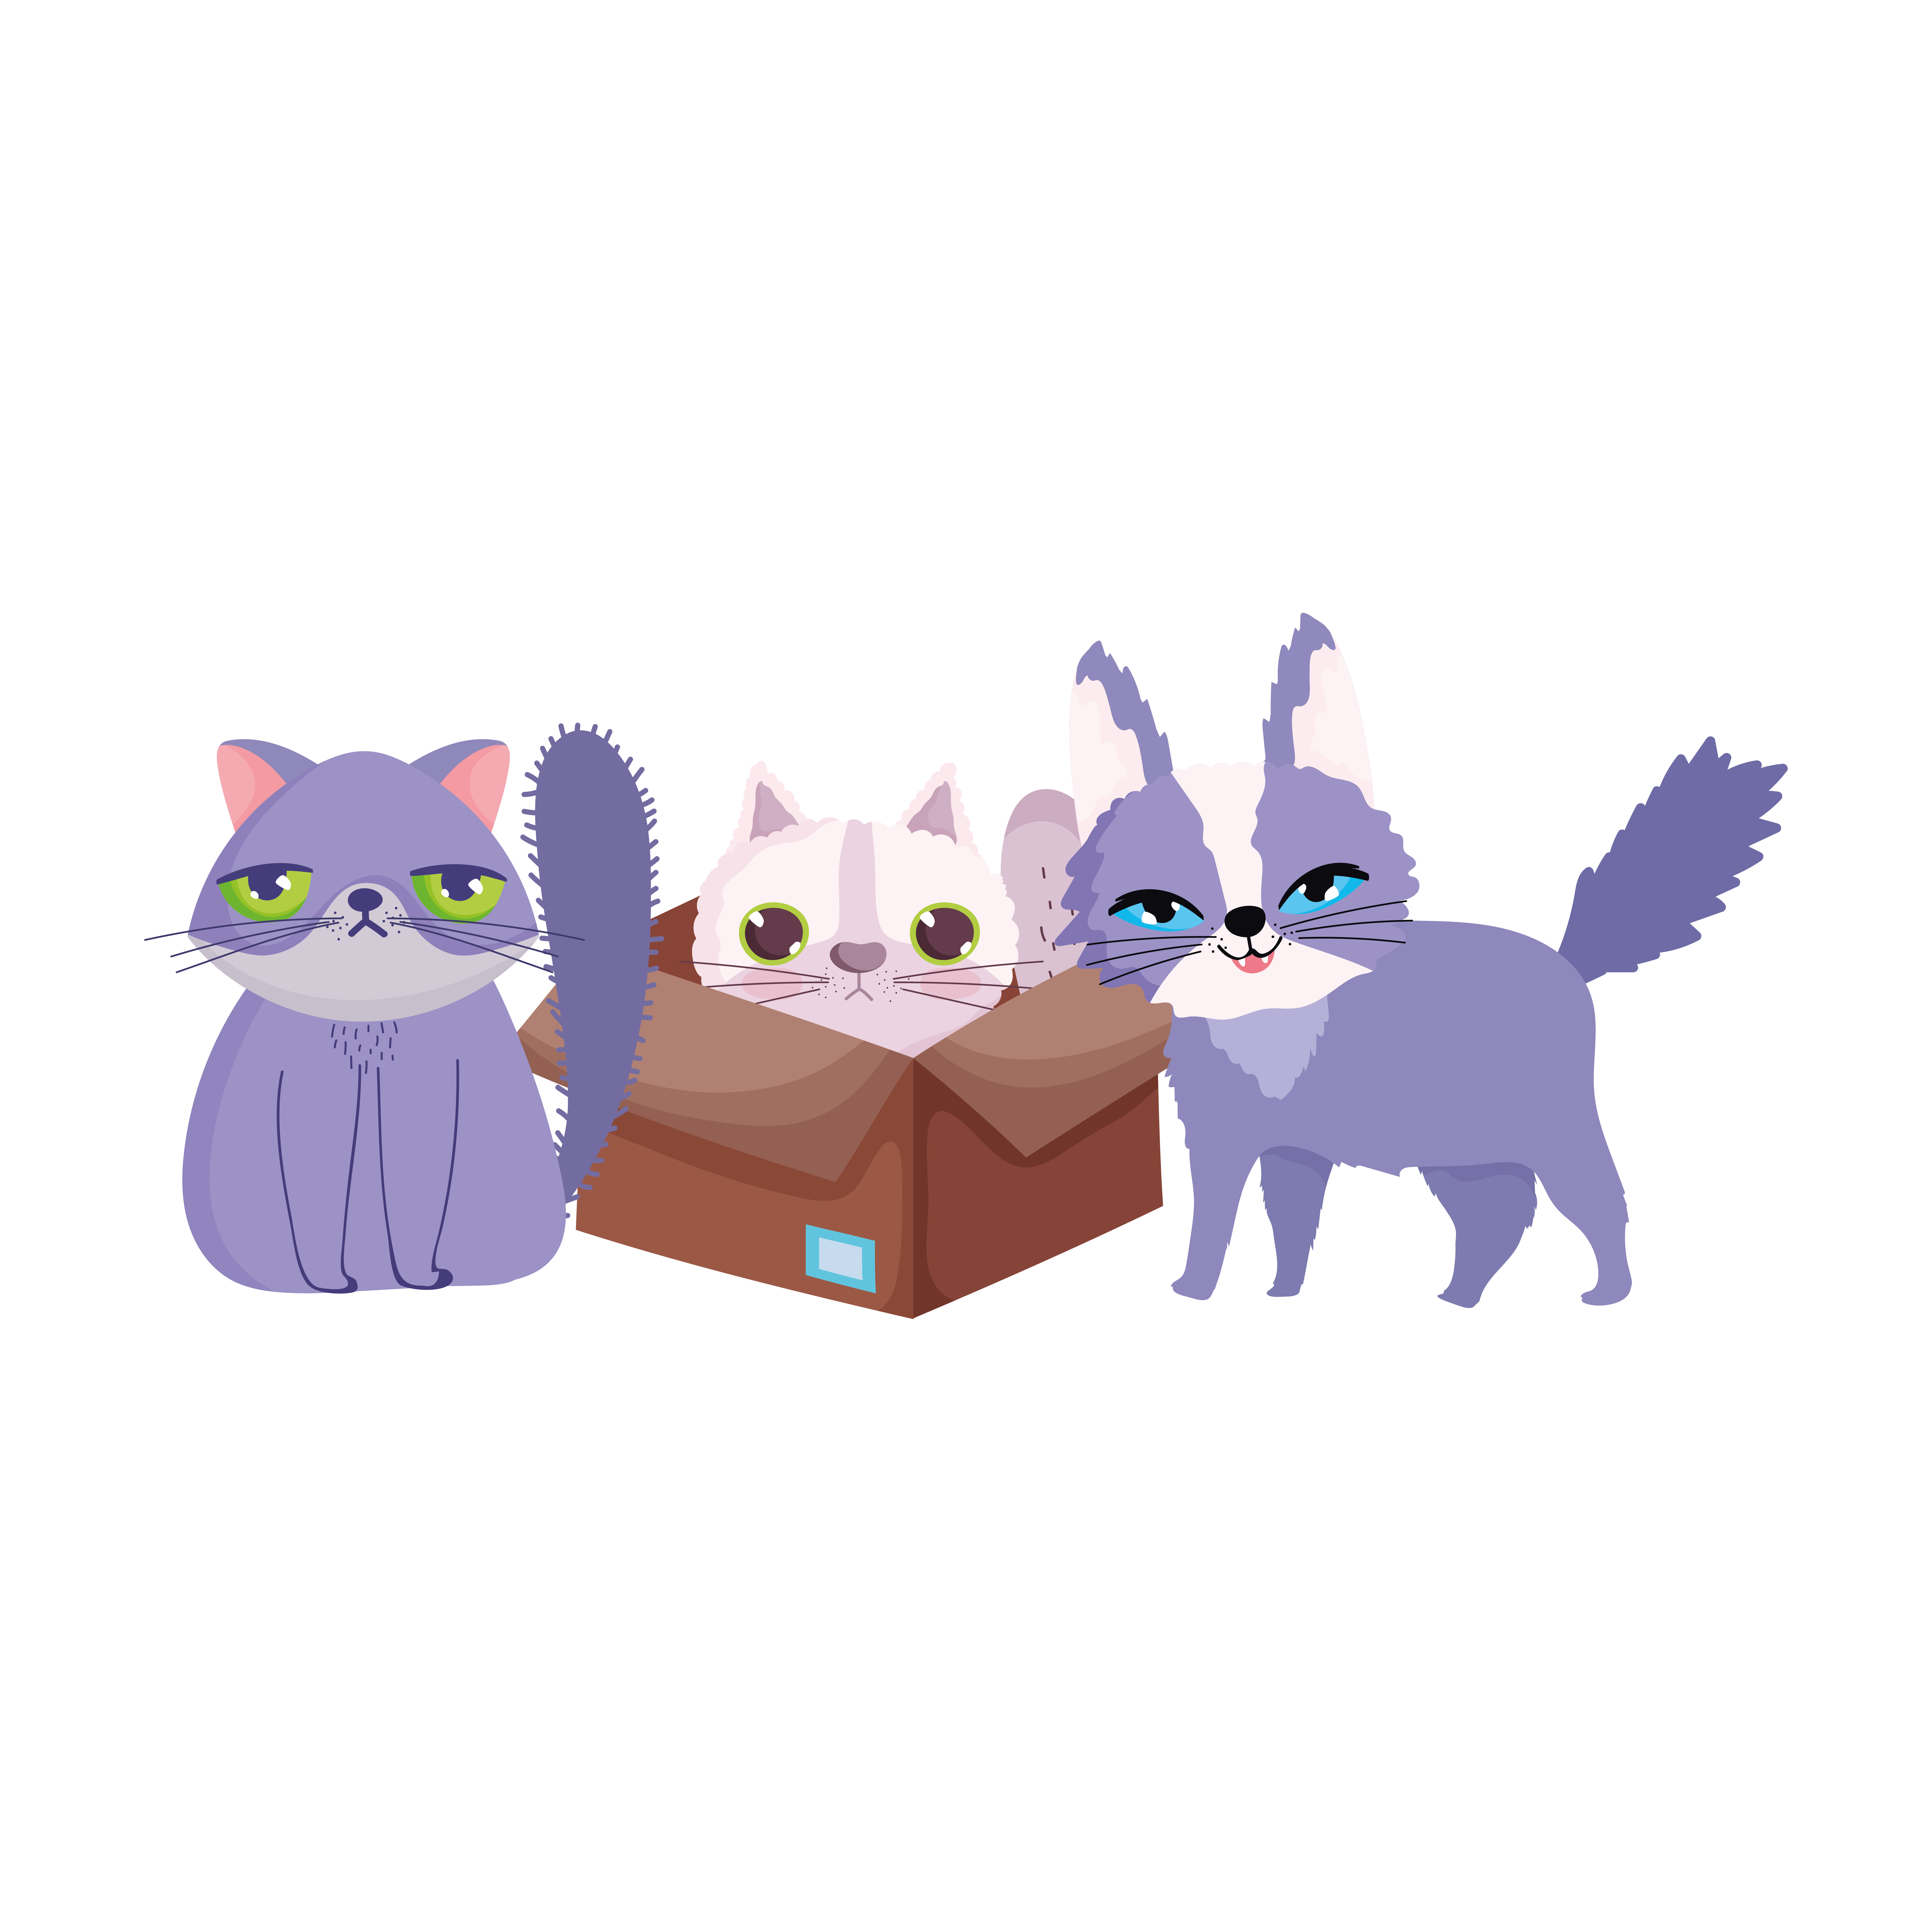 Pet Shop Ugly And Fluffy Cats In Box Animal Domestic Cartoon Download Free Vectors Clipart Graphics Vector Art